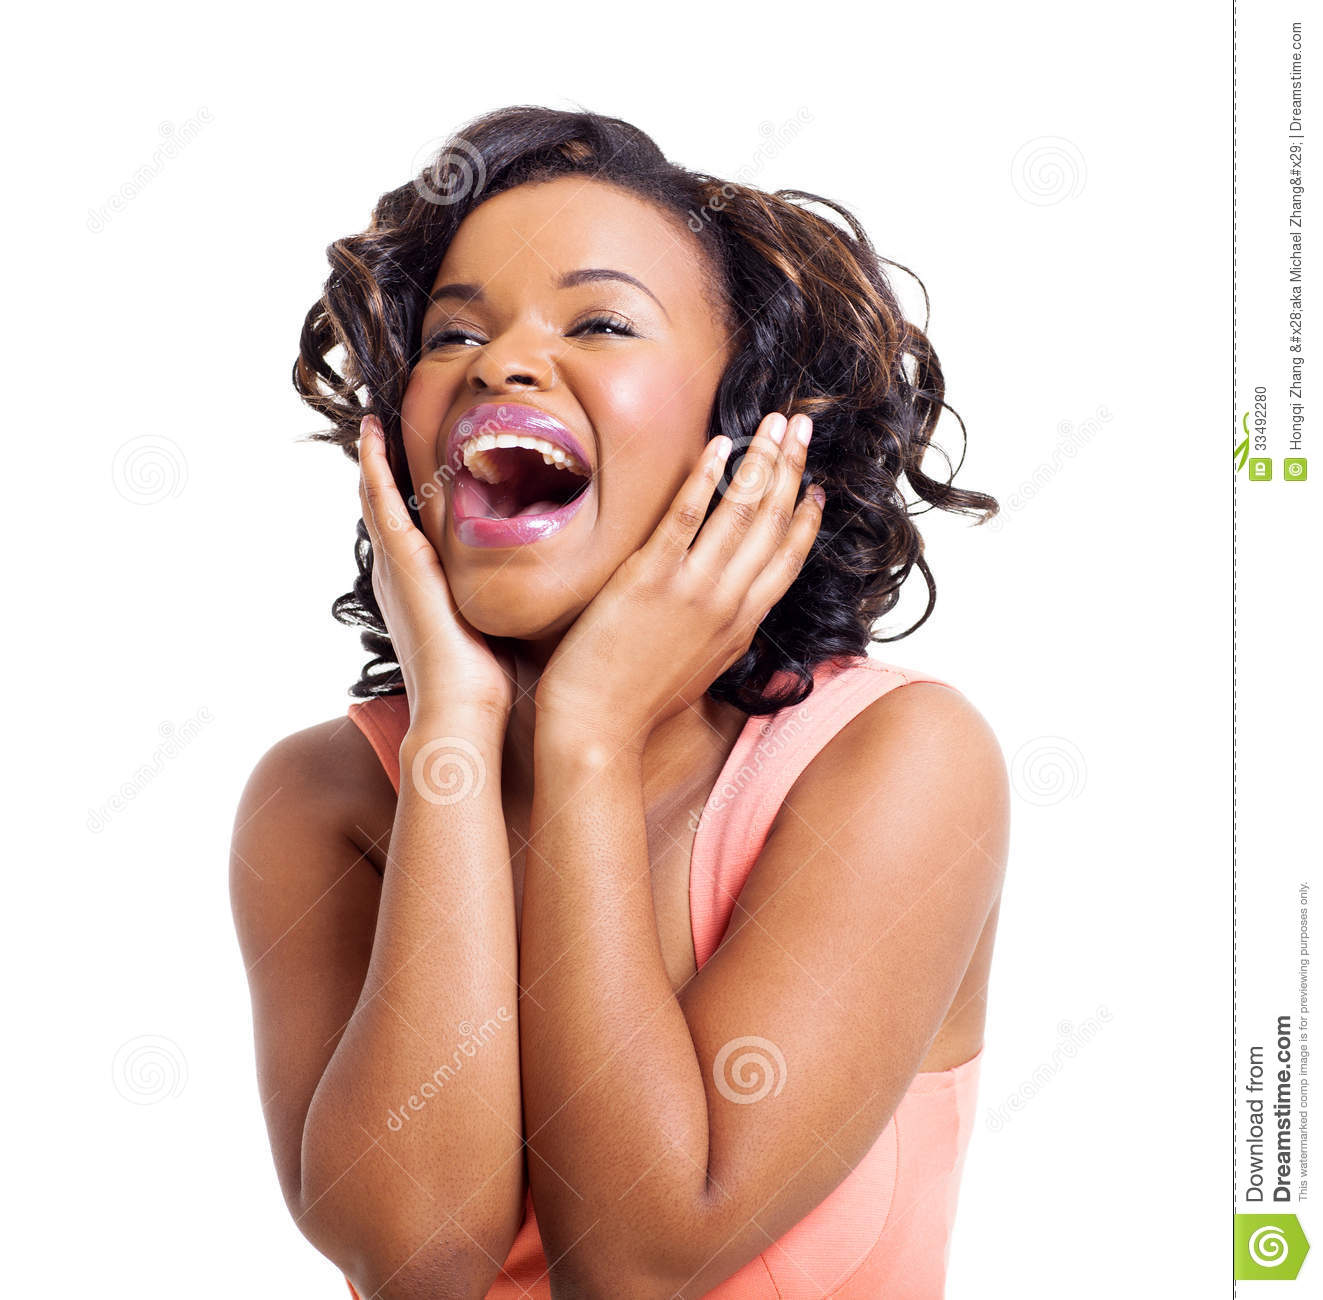 Cute African American Woman Laughing On White Background